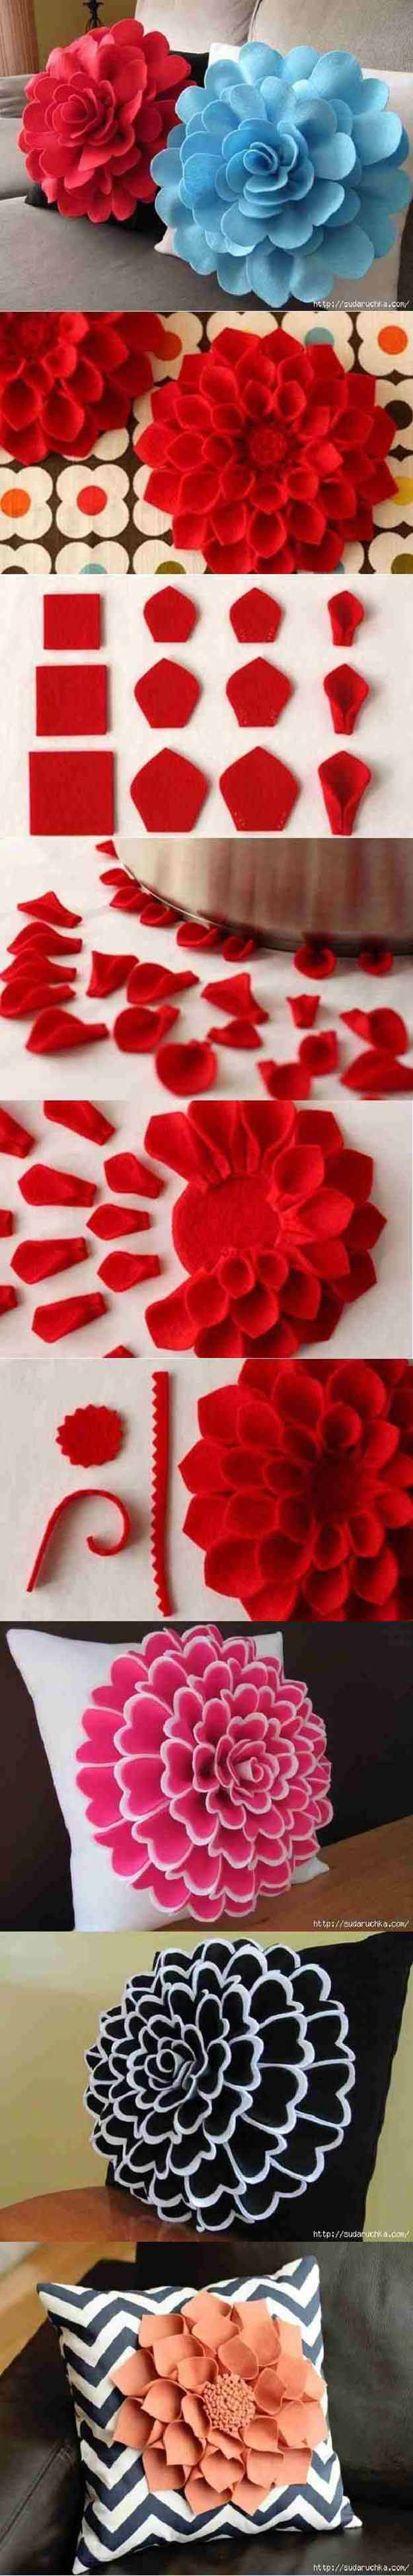 DIY Decorative Felt Flower Pillow | 17 Adorable DIY Pillow Ideas